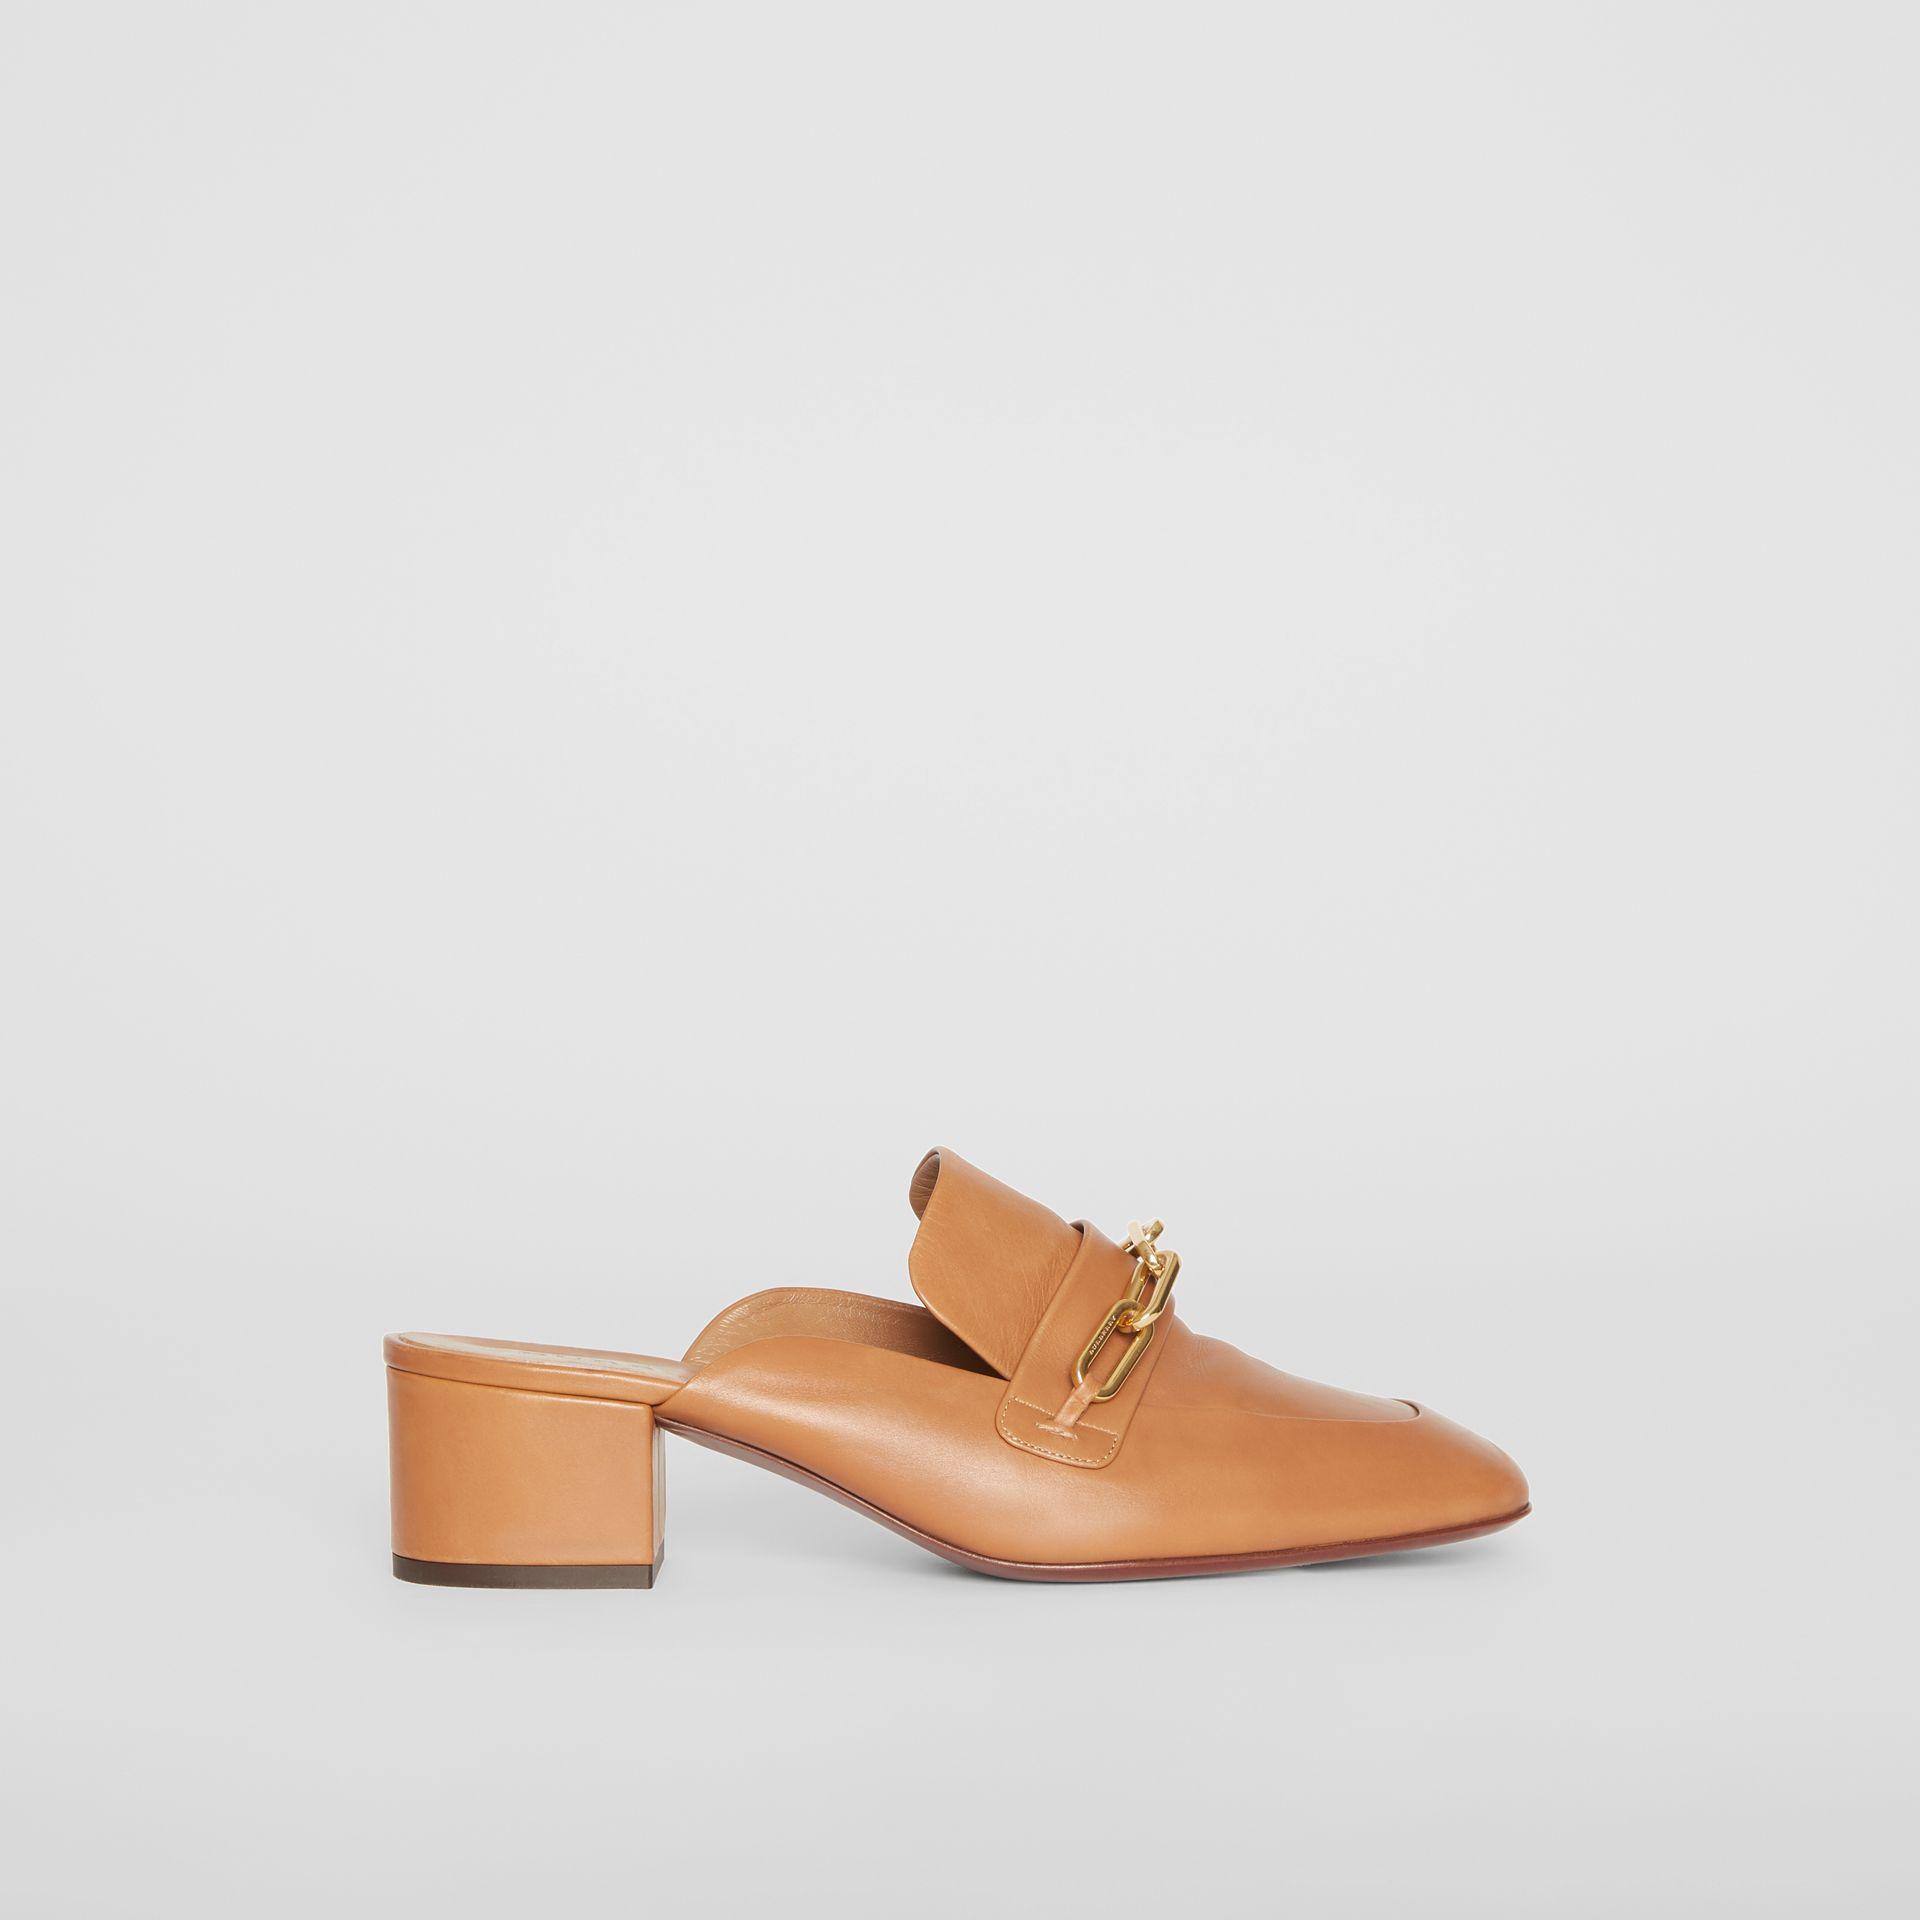 Link Detail Leather Block-heel Mules in Camel - Women | Burberry - gallery image 4